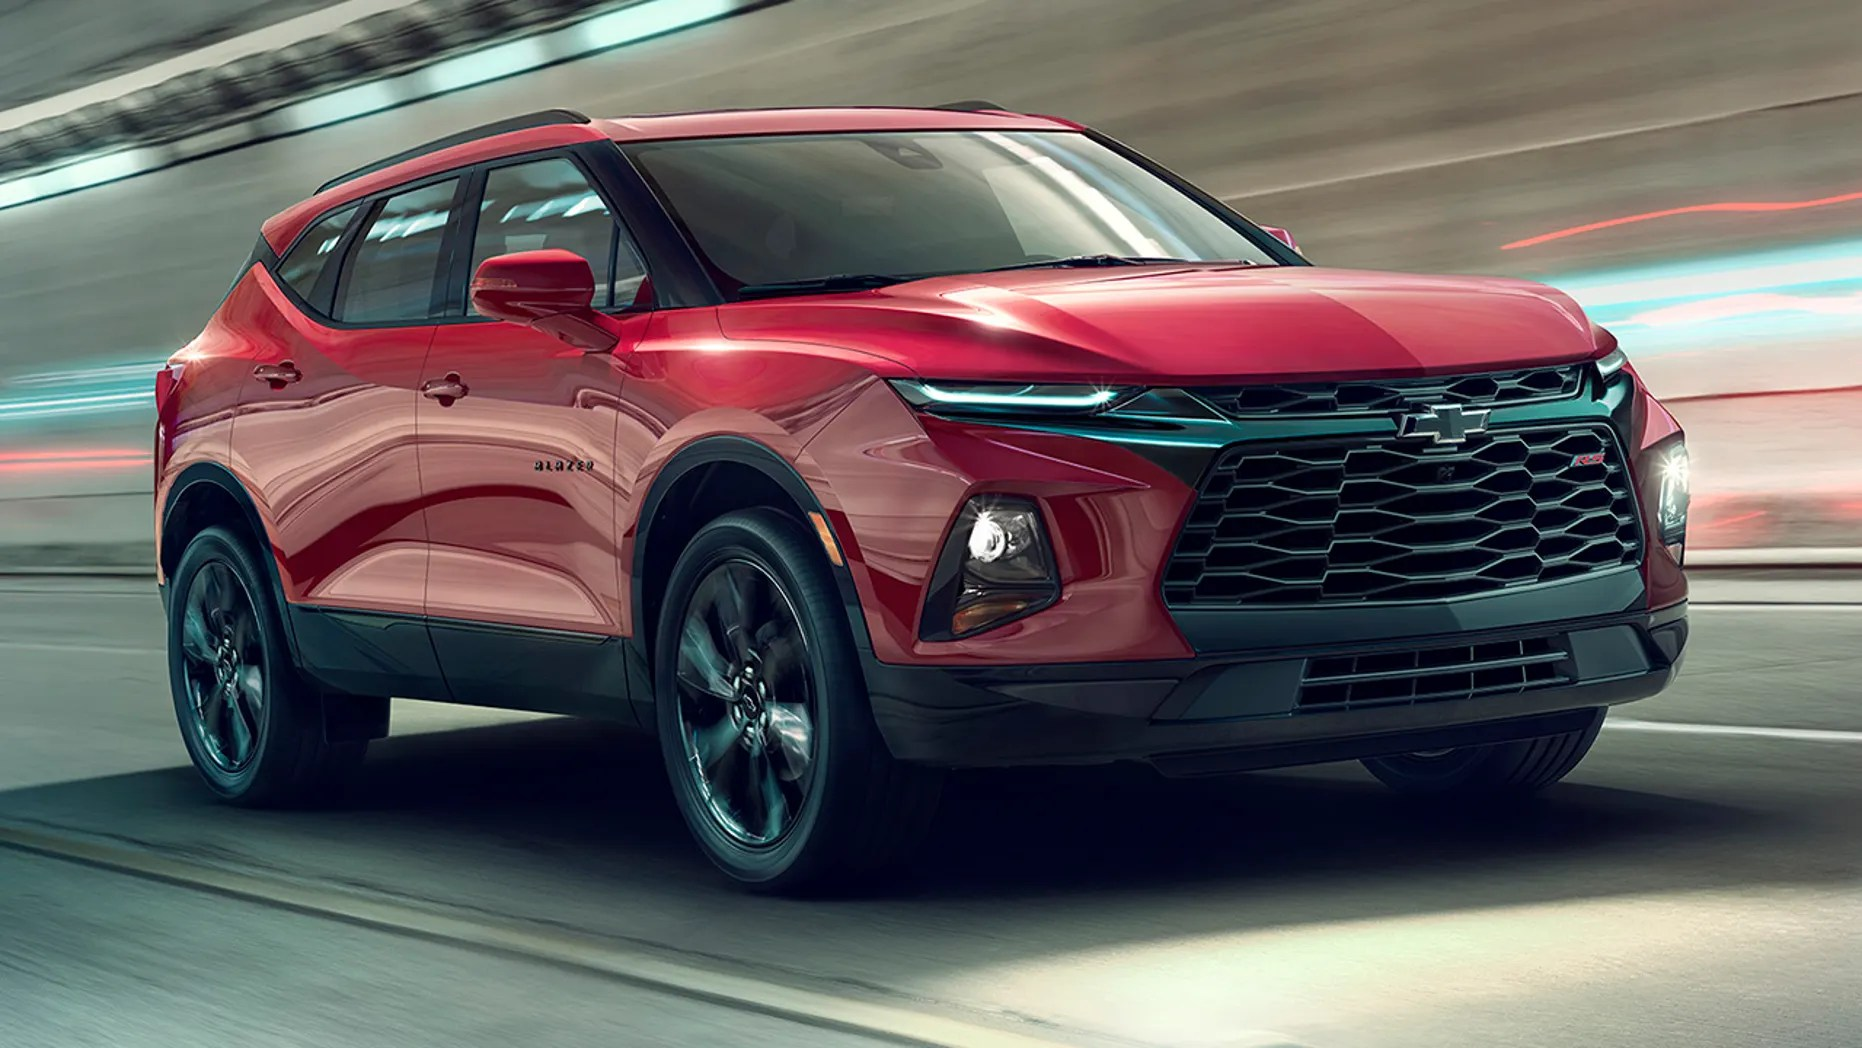 hight resolution of 2019 chevrolet blazer rs an attention grabbing midsize suv offering style and versatility